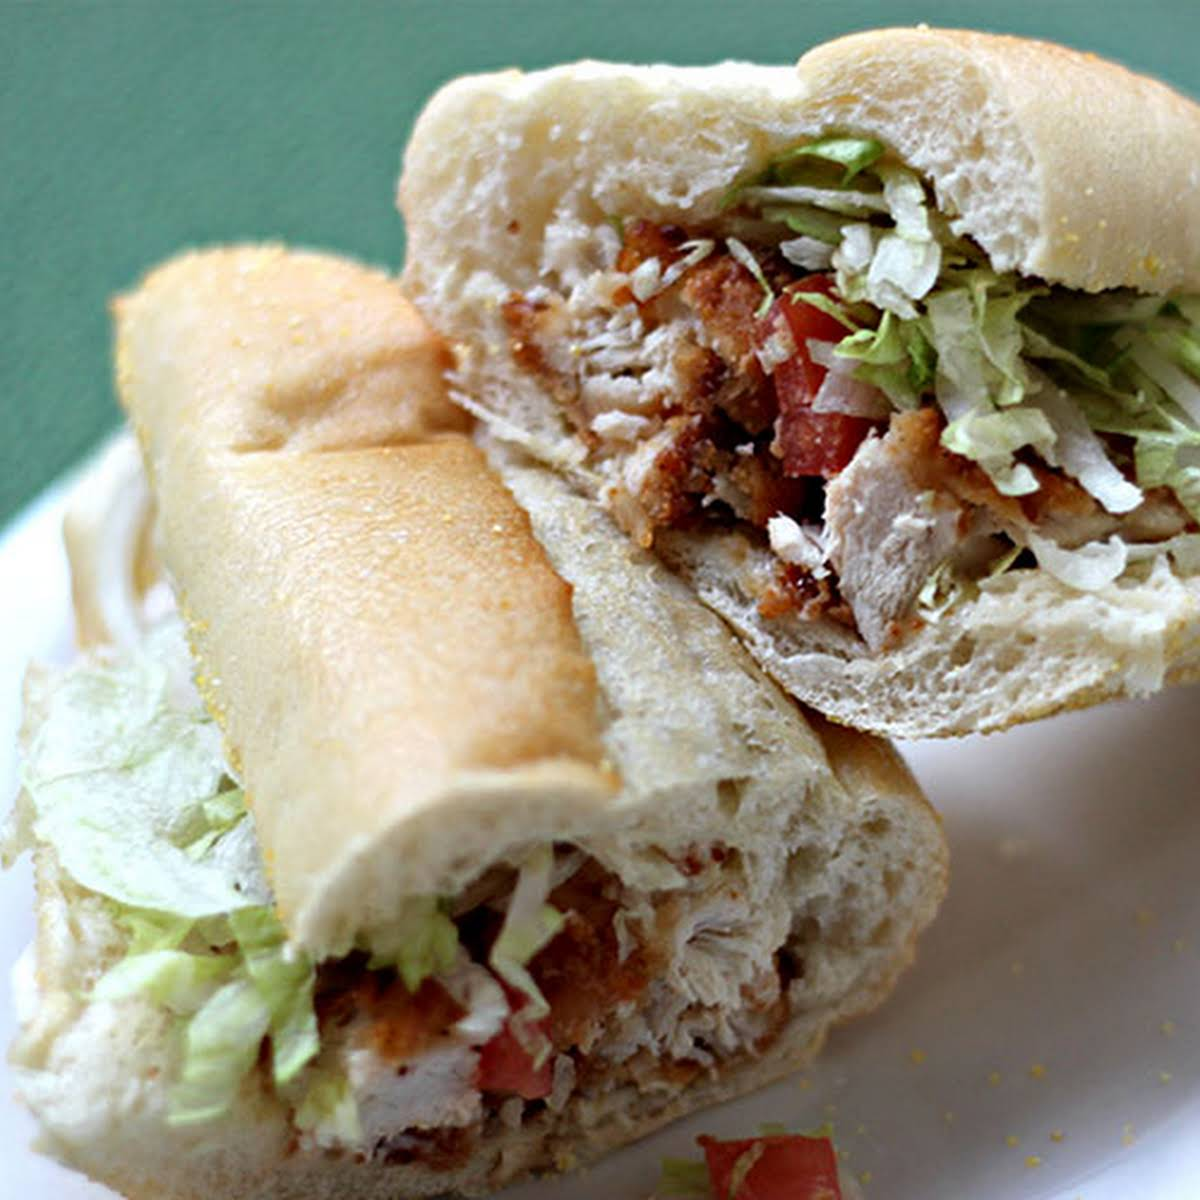 National Submarine-Hoagy-Hero-Grinder Day | Chicken  pain Sub